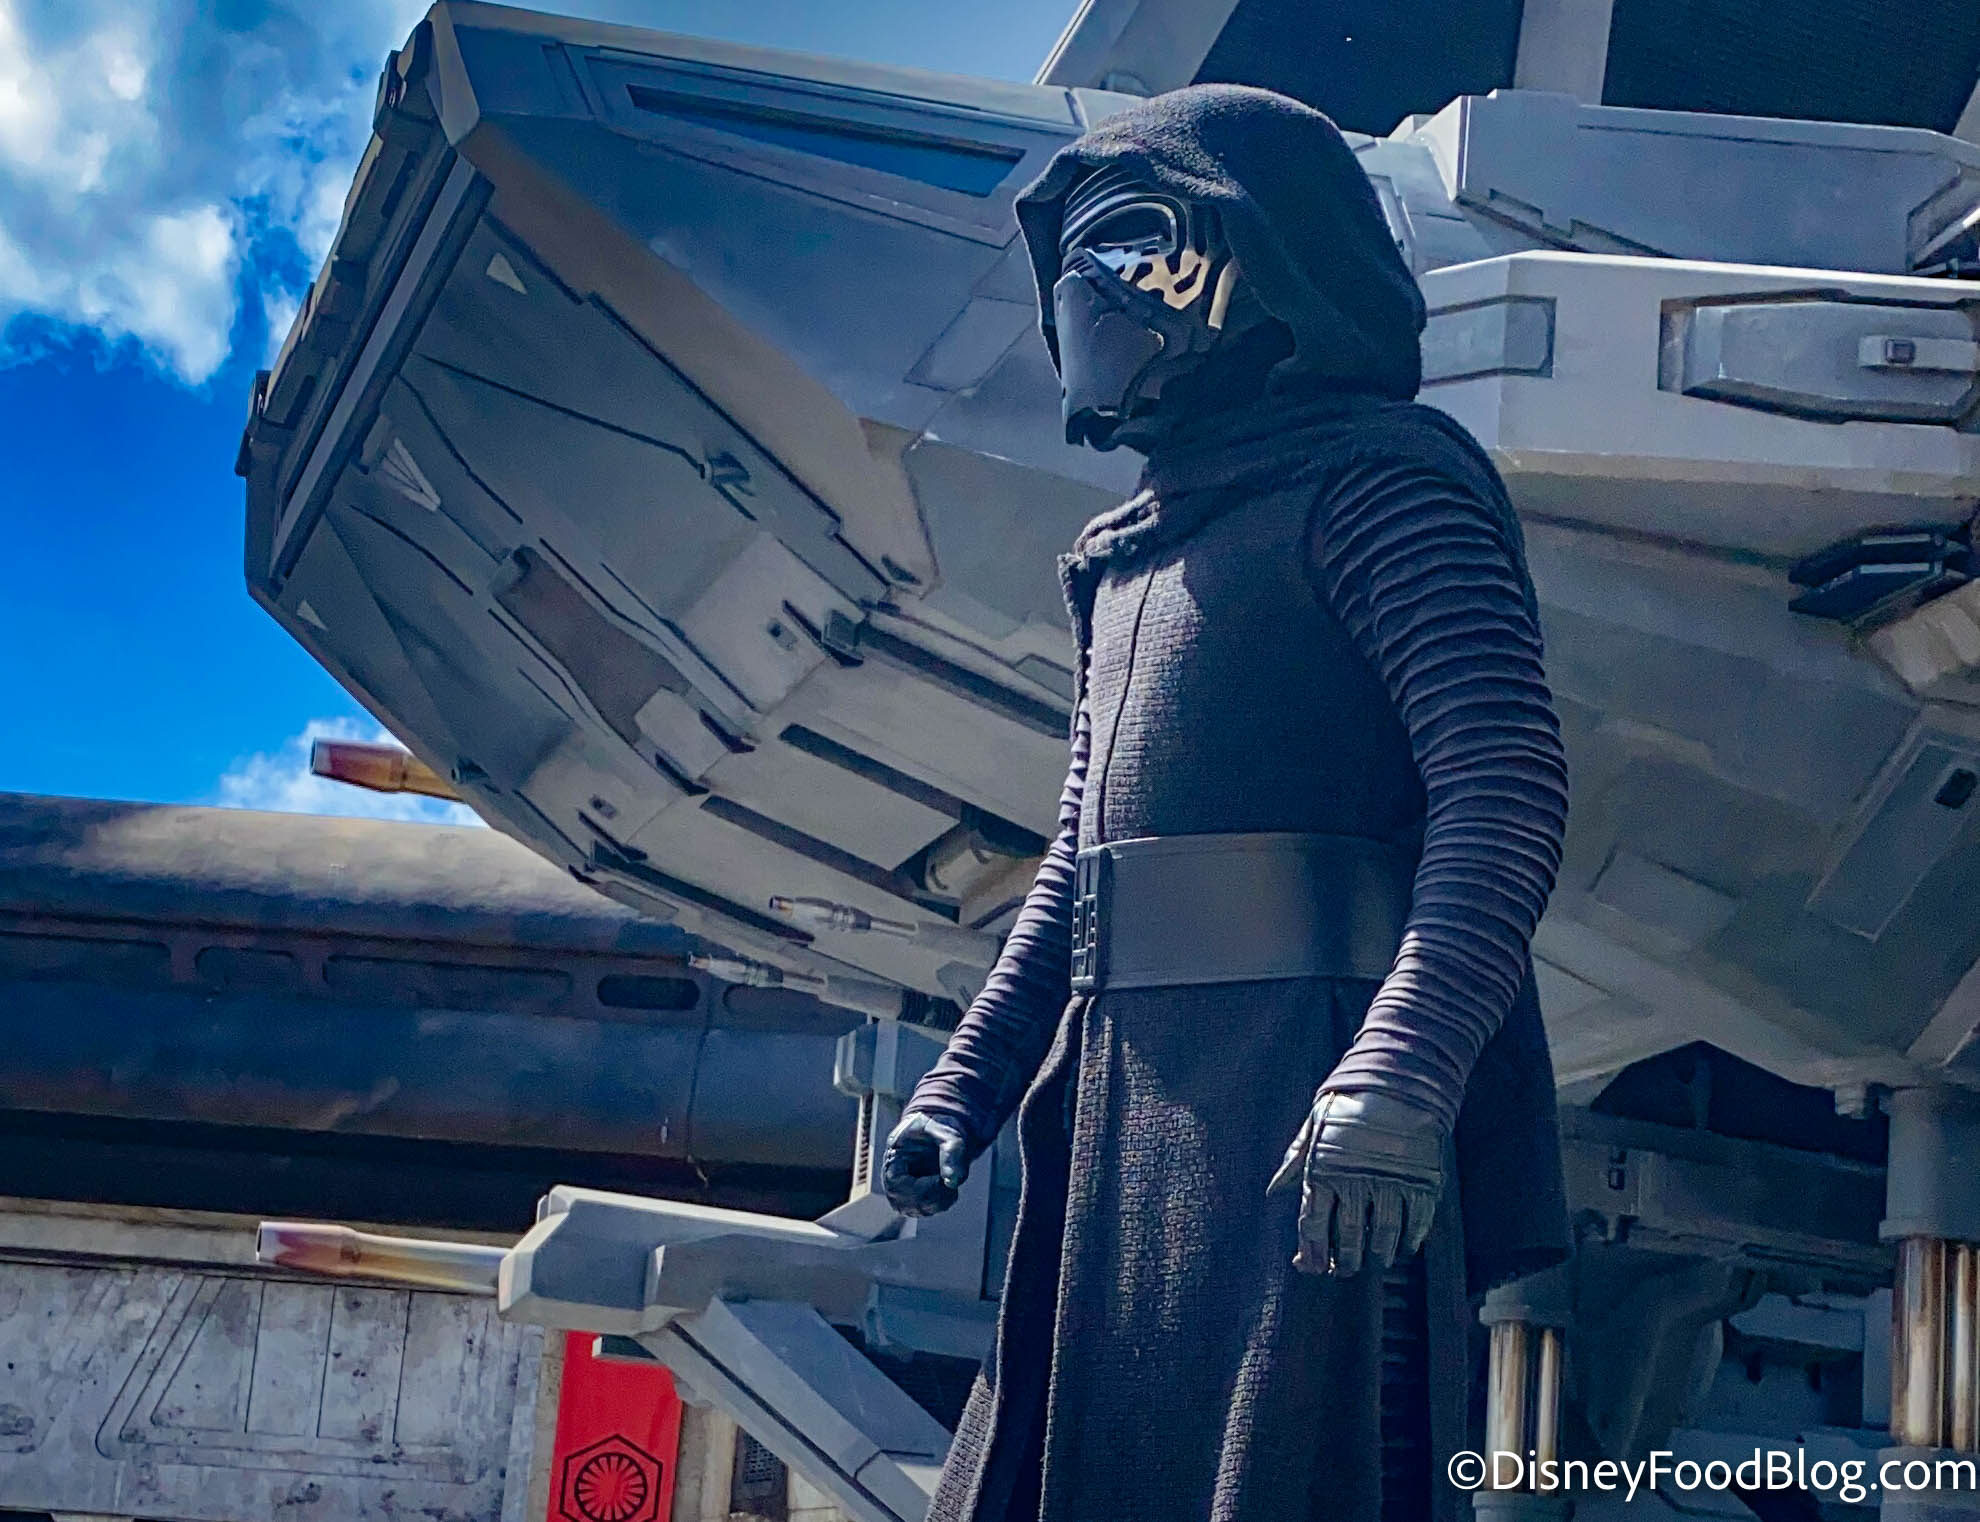 Disney World Is HIRING Actors to Play Rey and Kylo Ren at the Star Wars Hotel!